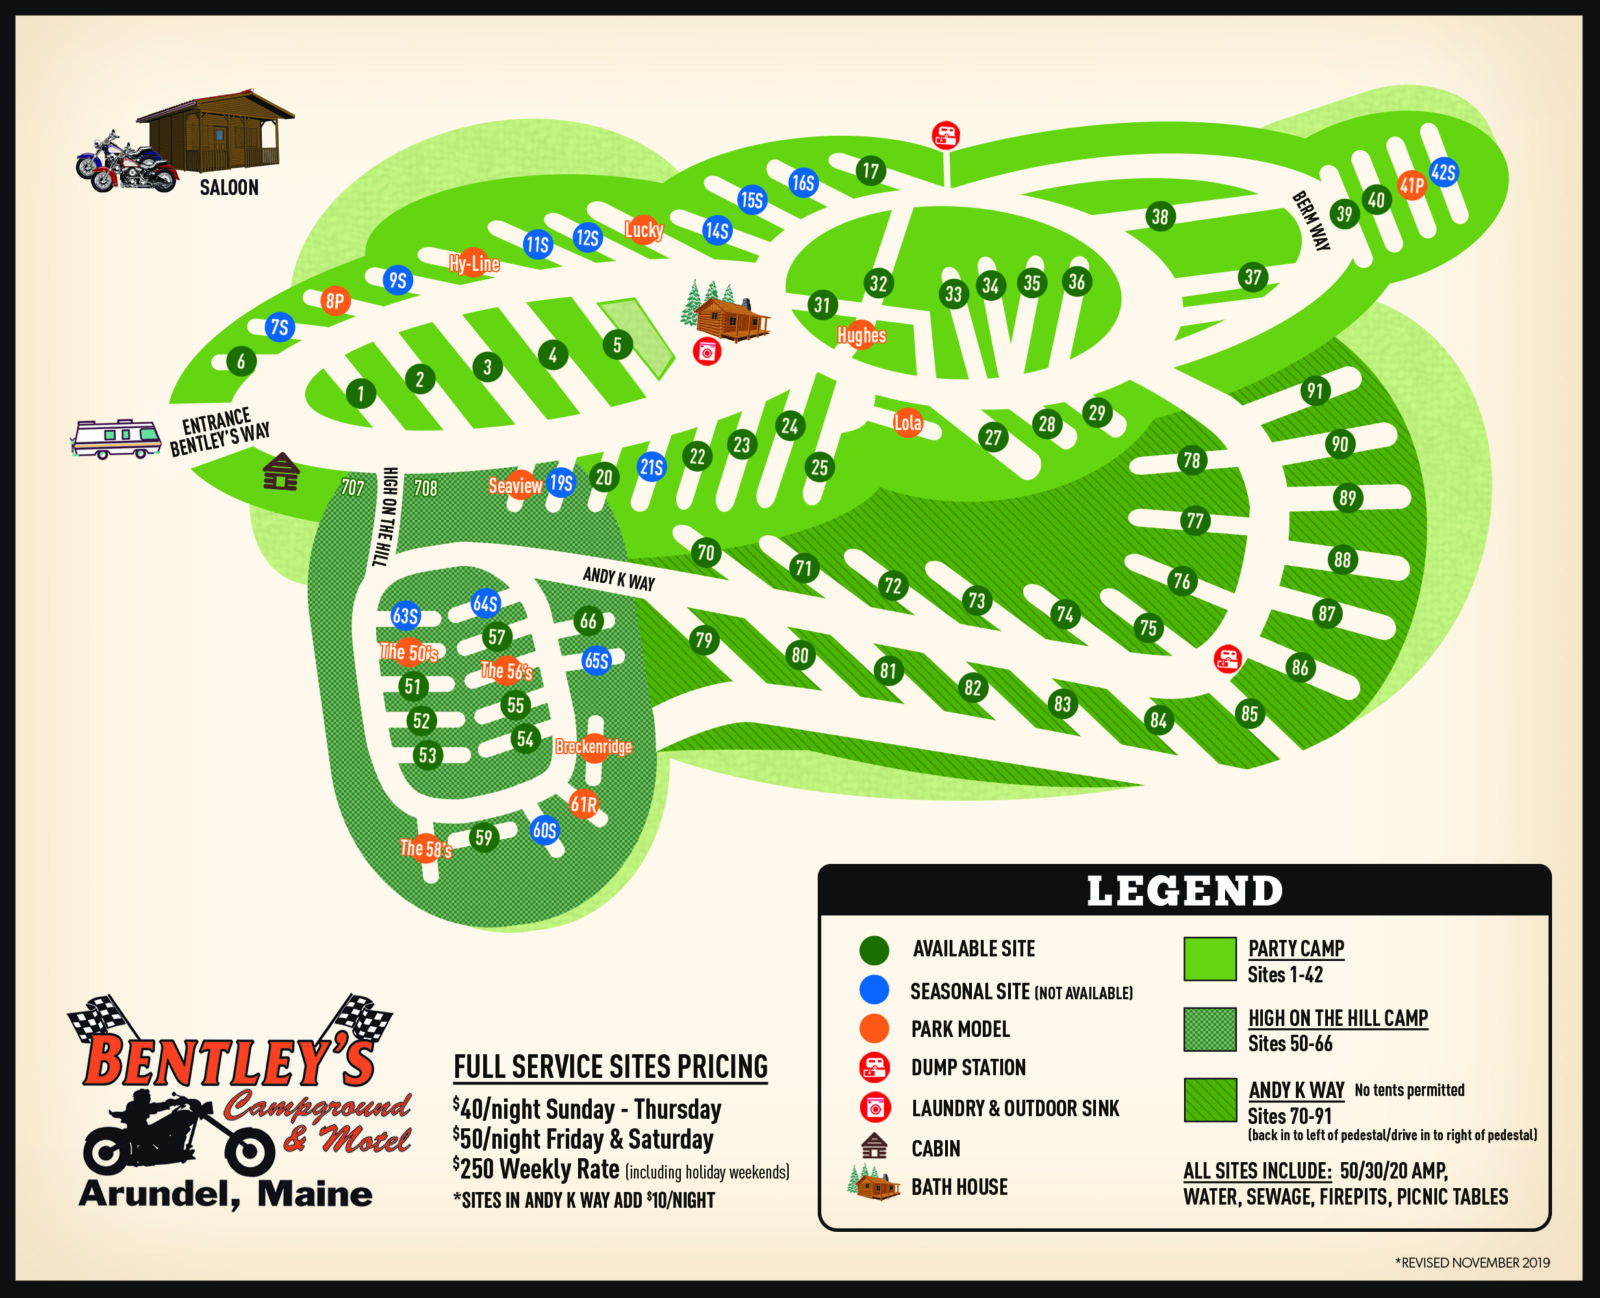 2019 Bentleys Campground Map_rev11_19